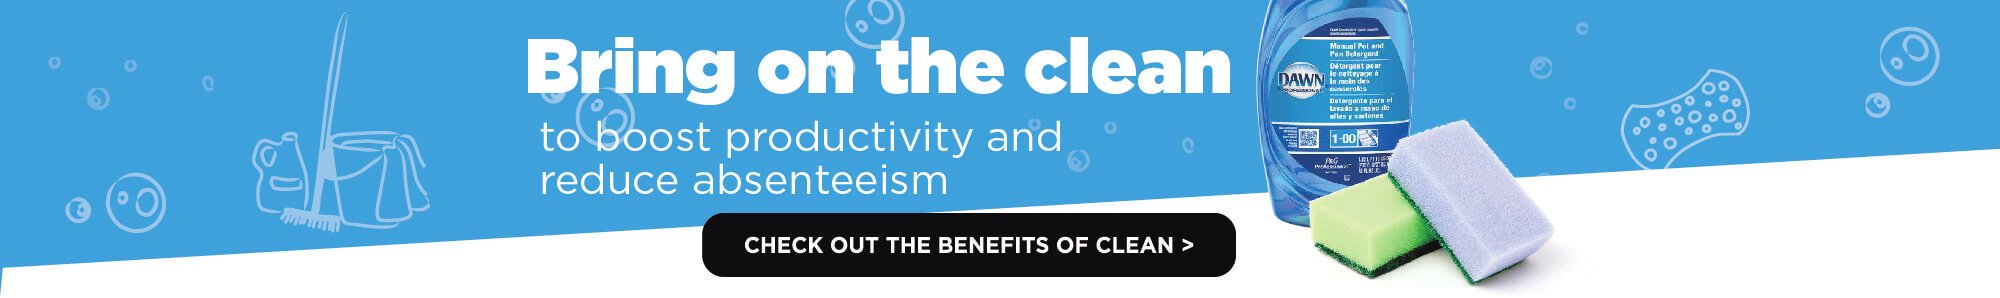 Bring on the clean to boost productivity and reduce absenteeism at tx186.com!